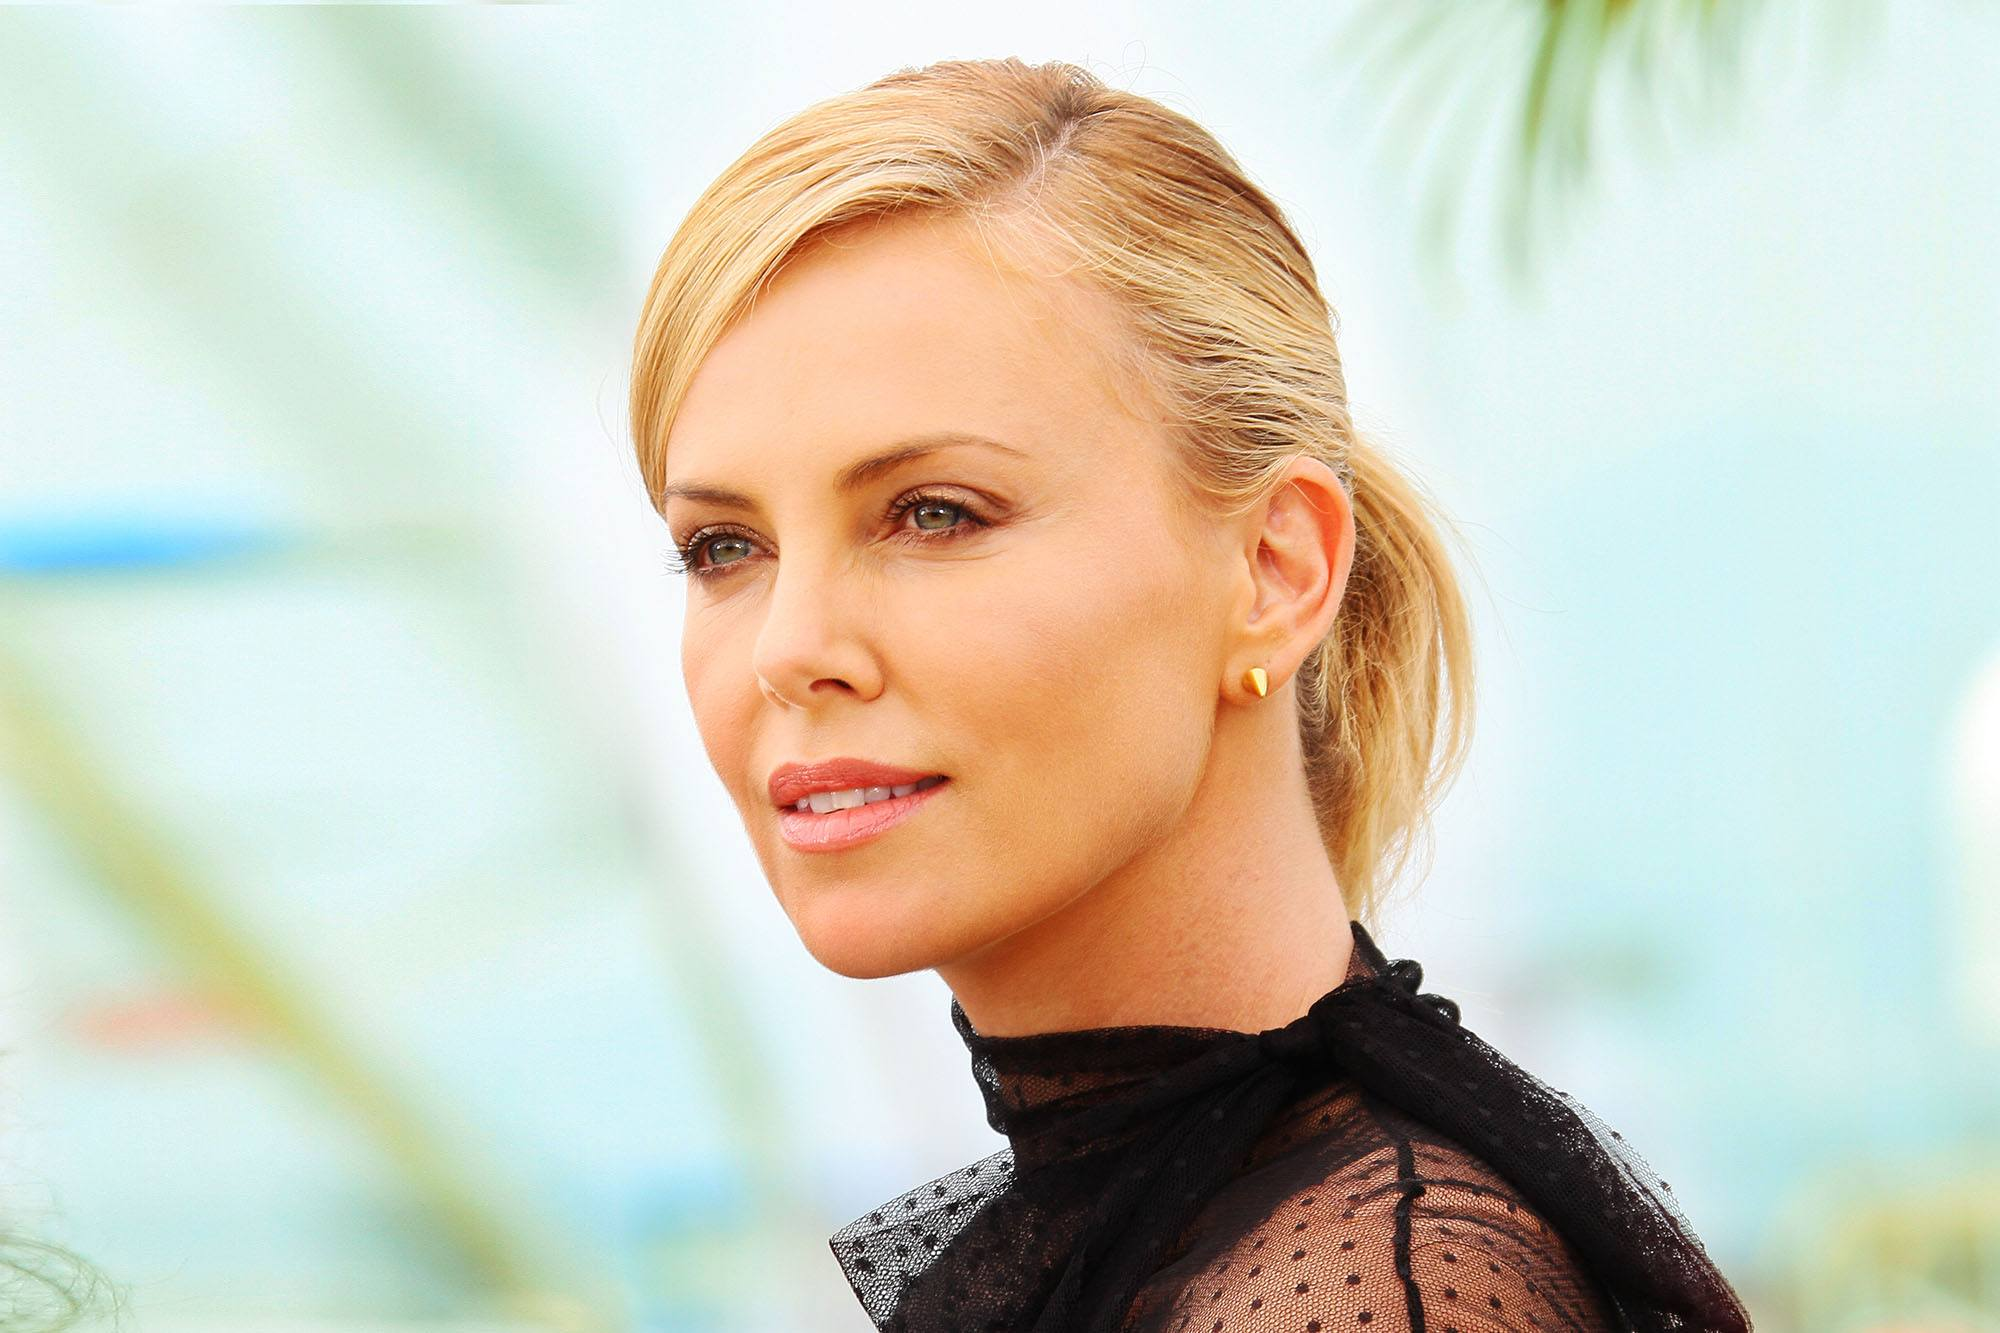 Charlize Theron attends the 'Mad Max - Fury Road' Photocall during the 68th annual Cannes Film Festival on May 14, 2015 in Cannes, France (Denis Makarenko/Shutterstock)